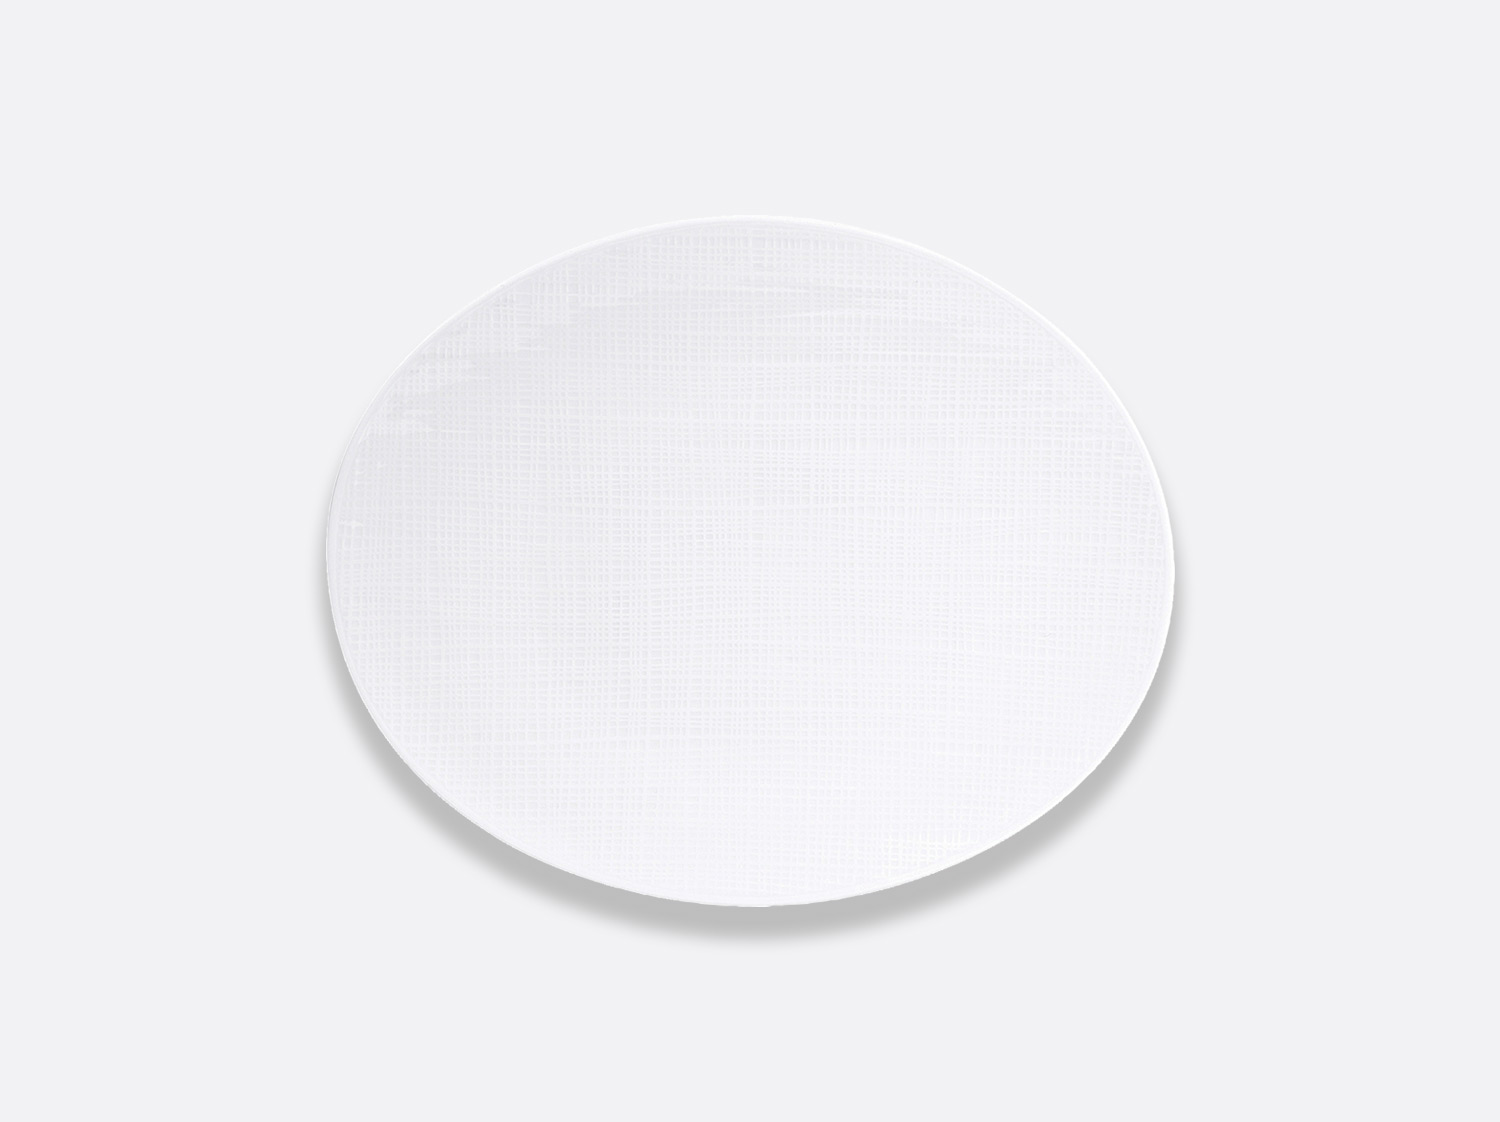 Assiette ovale 25 cm en porcelaine de la collection Organza Bernardaud